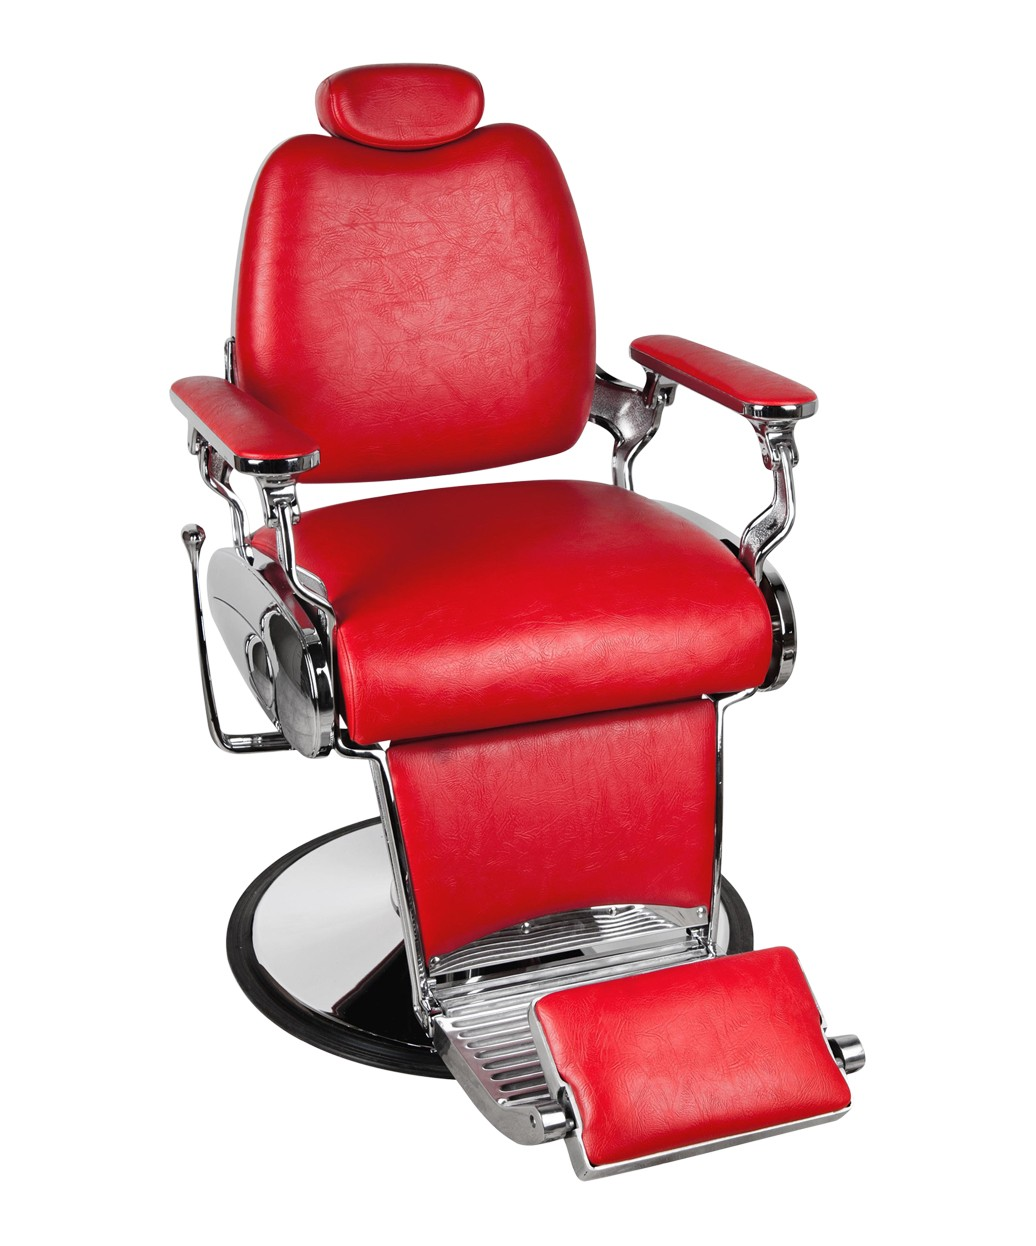 Jeffco 707 Jaguar Barber Chair